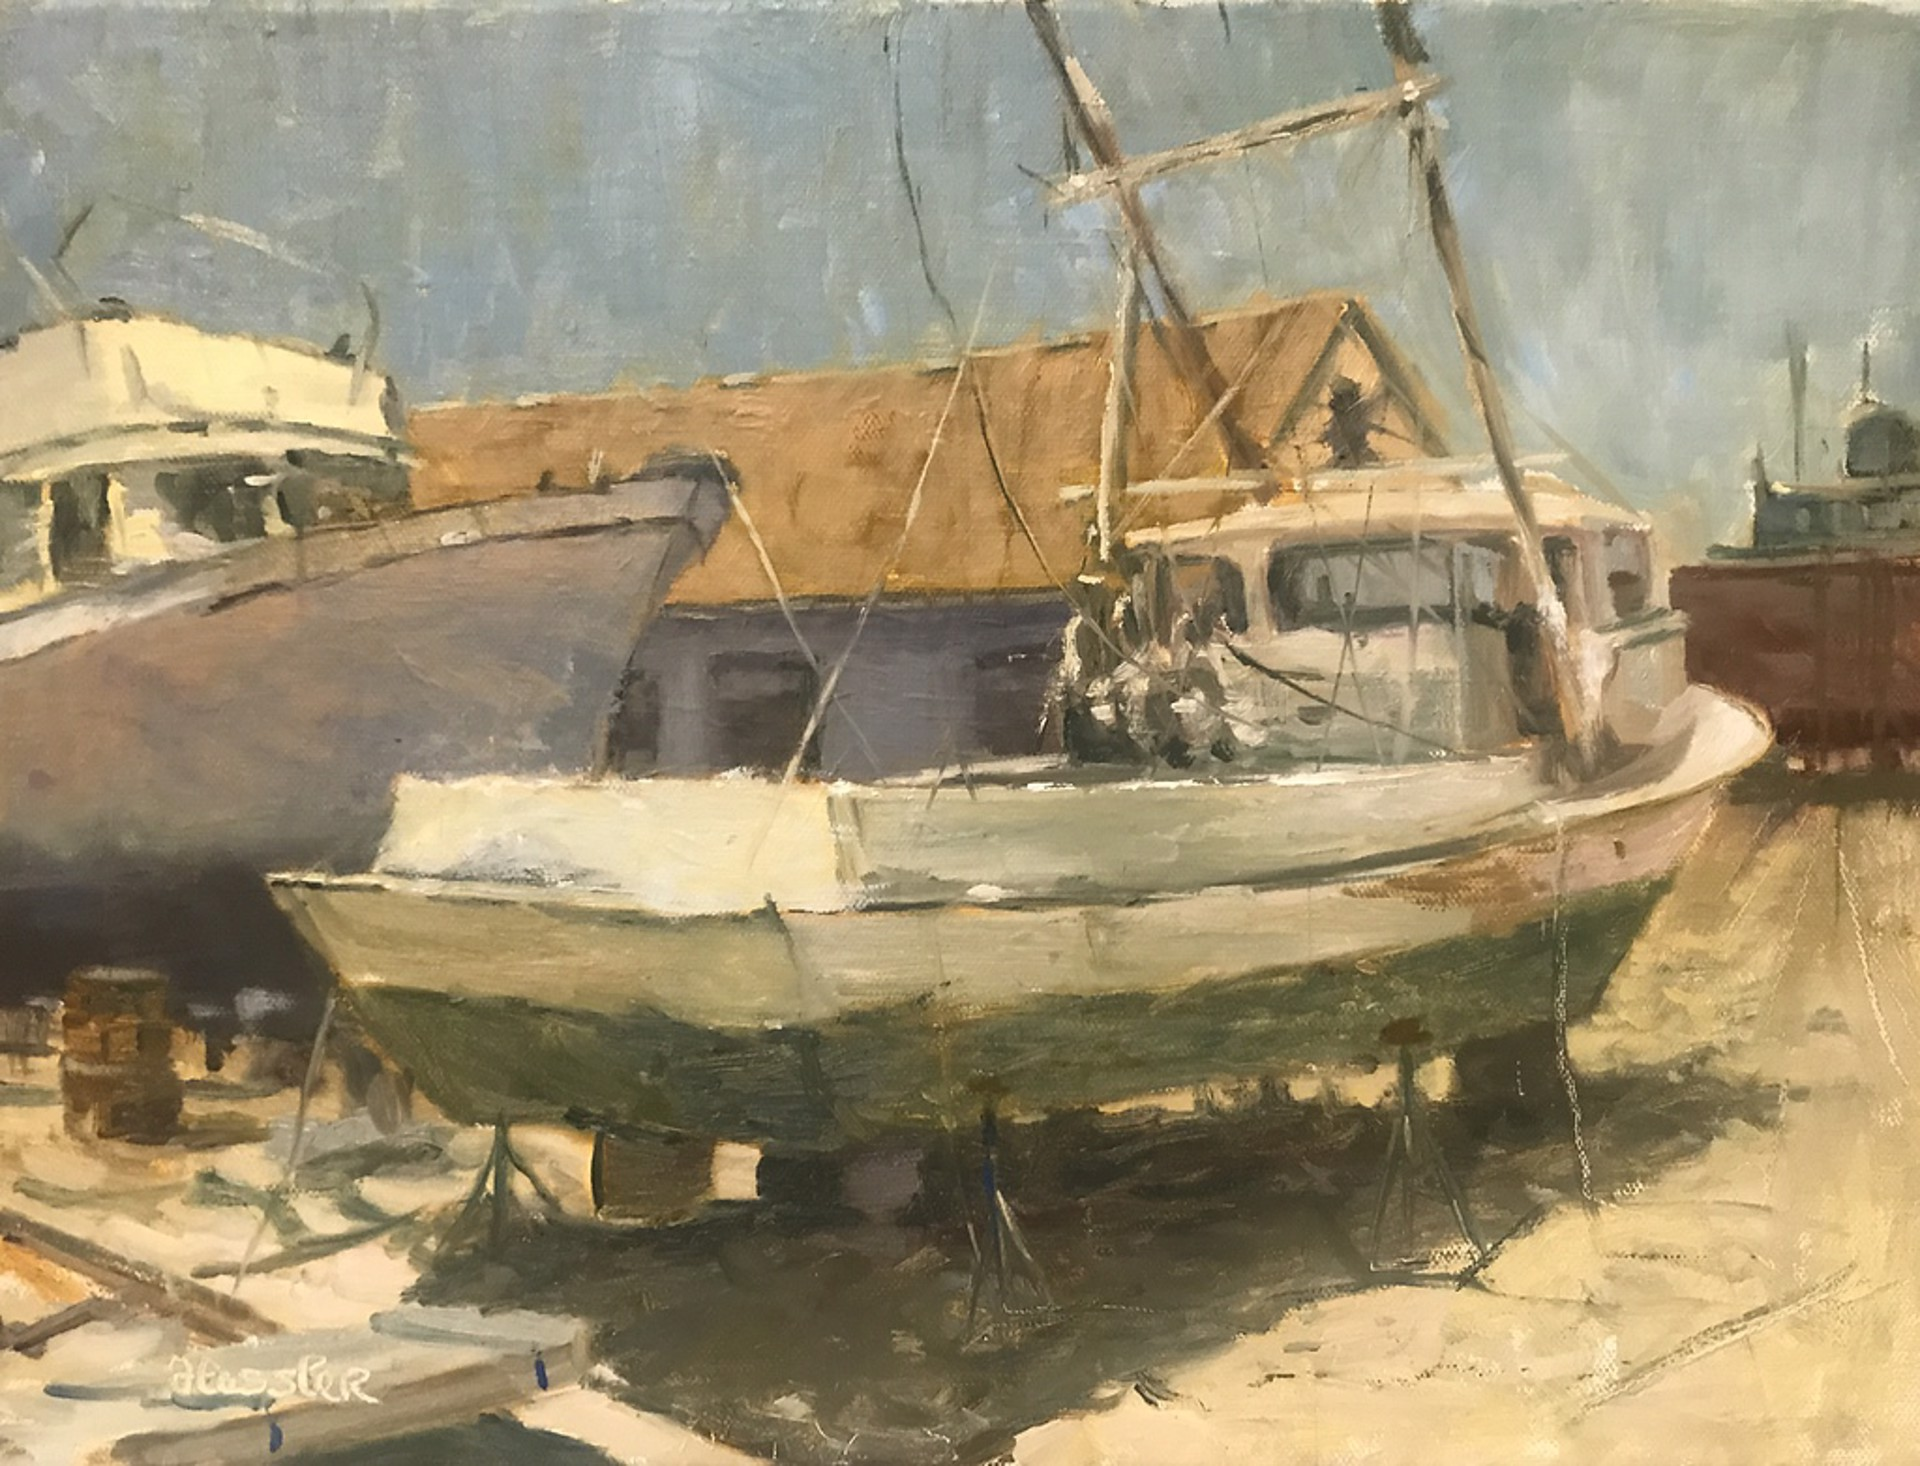 Tod and Ted's Boatyard, Beaufort by Steve Hessler